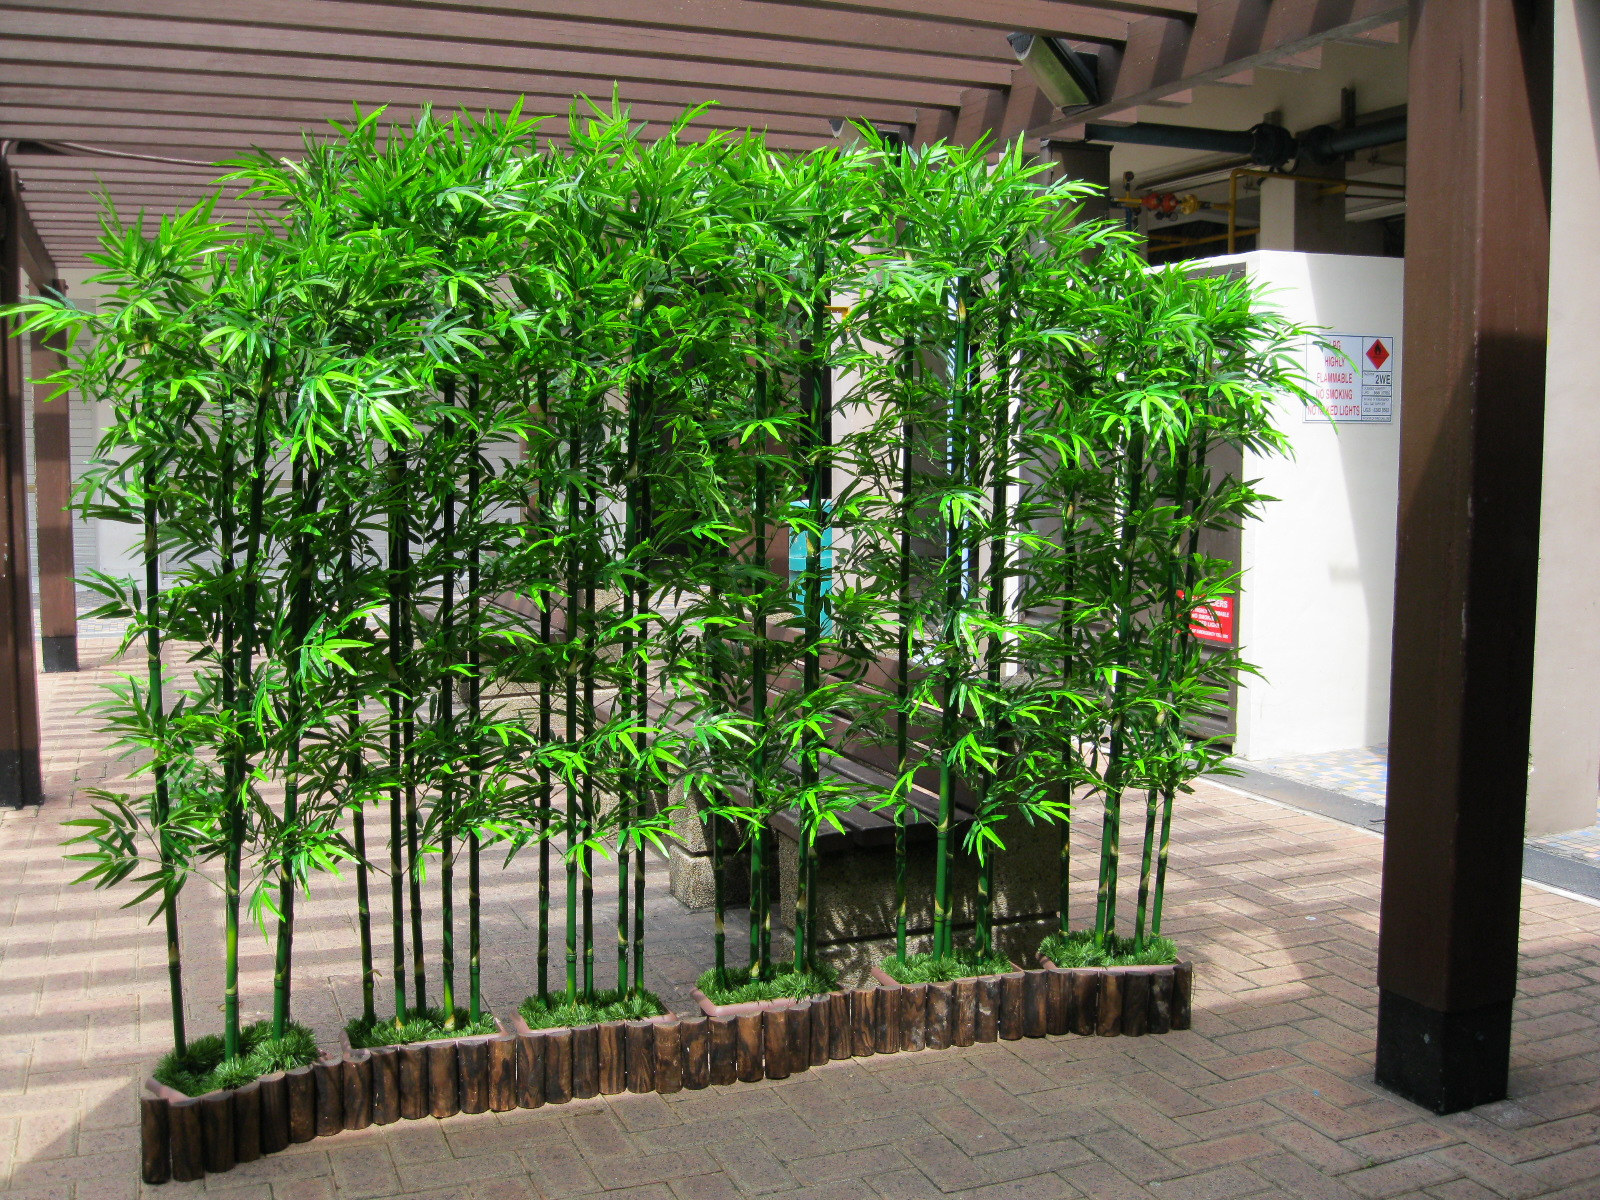 hoi kee flower shop bamboo landscape 34 On landscaping bamboo plants